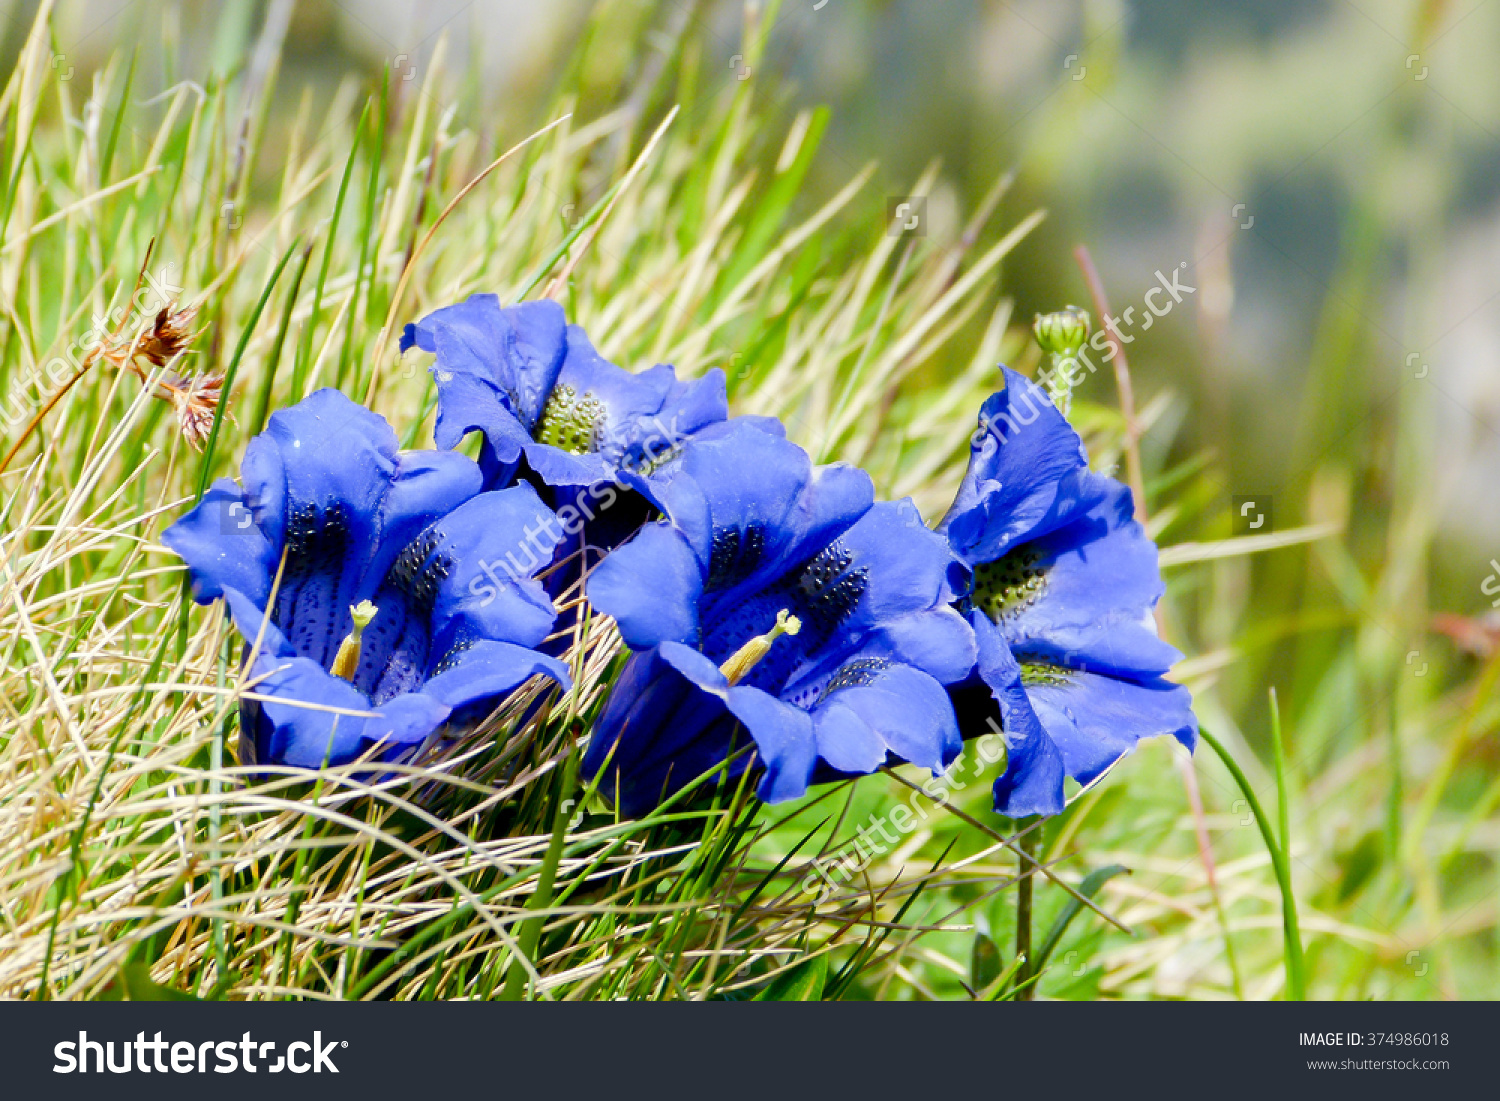 Alpine Flower Gentian Stock Photo 374986018 : Shutterstock.